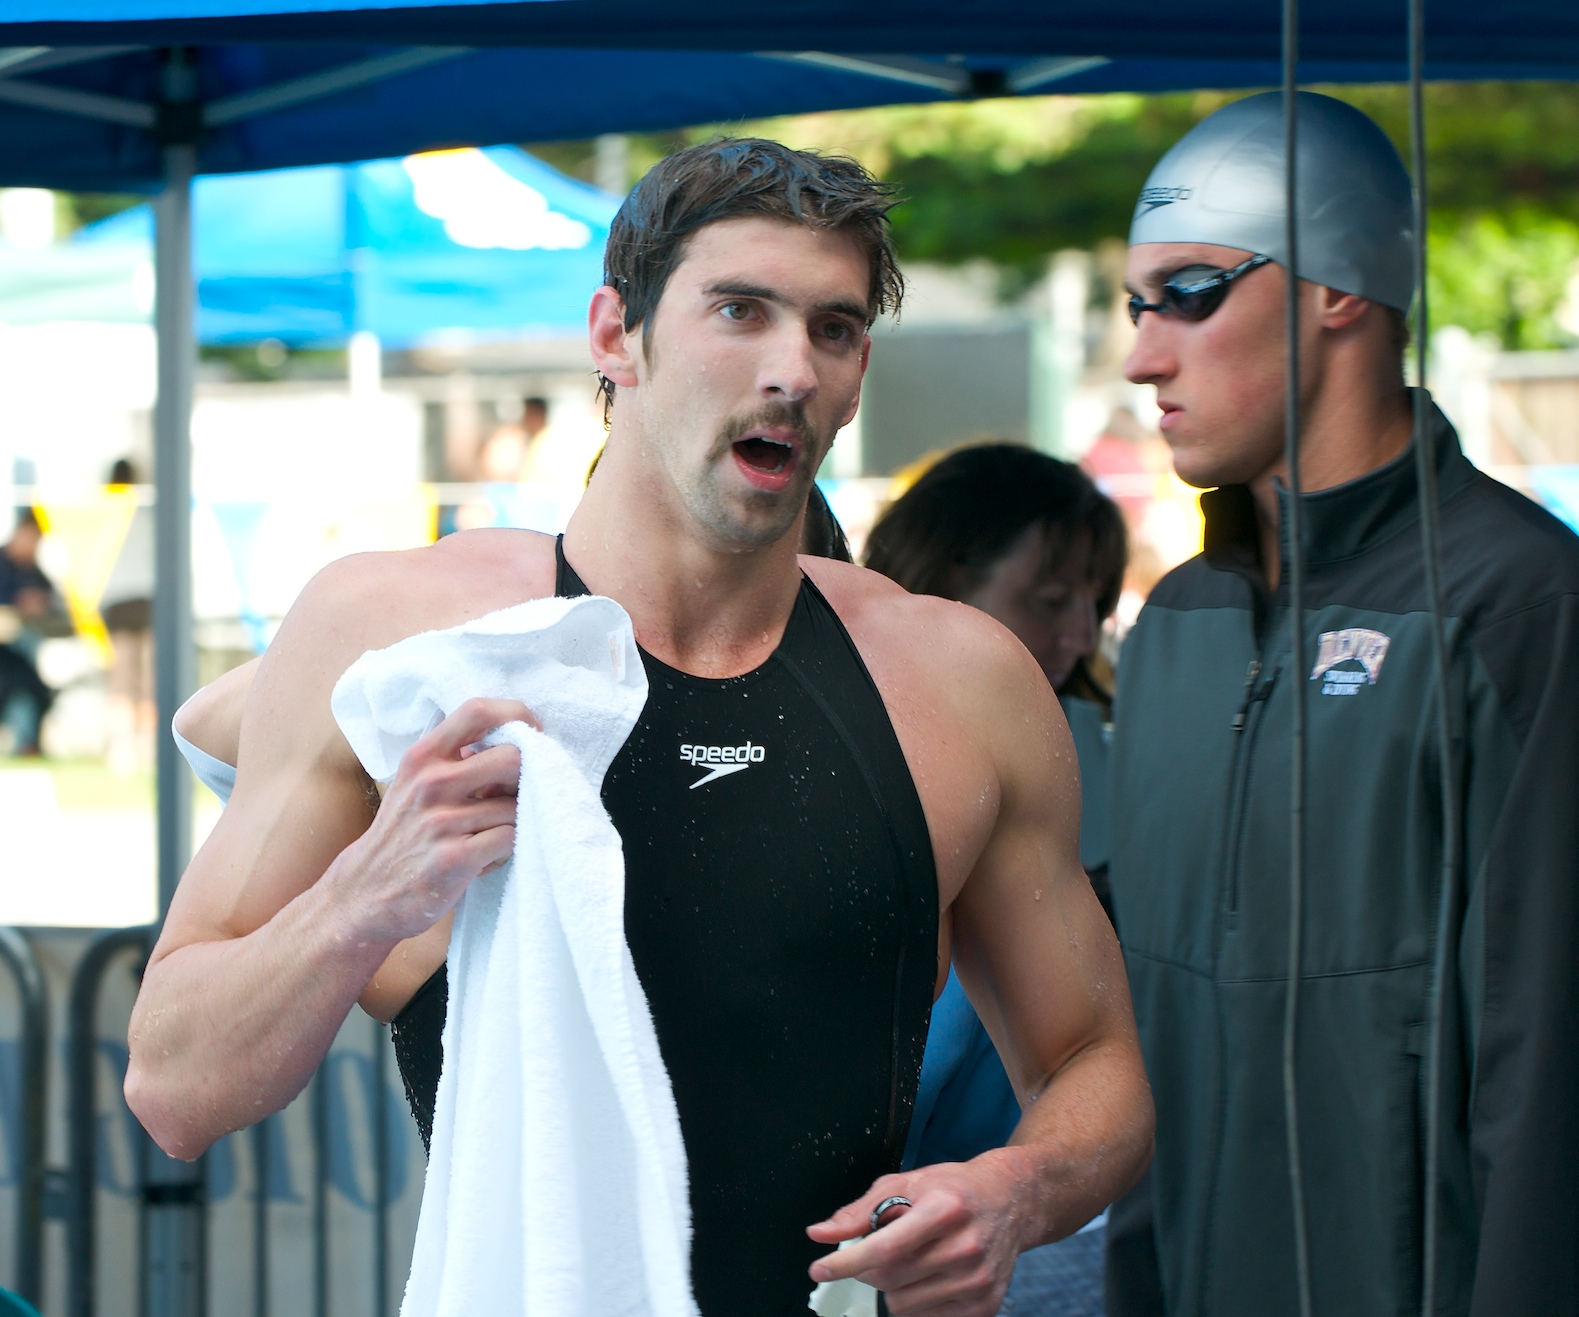 Michael Phelps in 2009. Photo by J.D. Lasica.